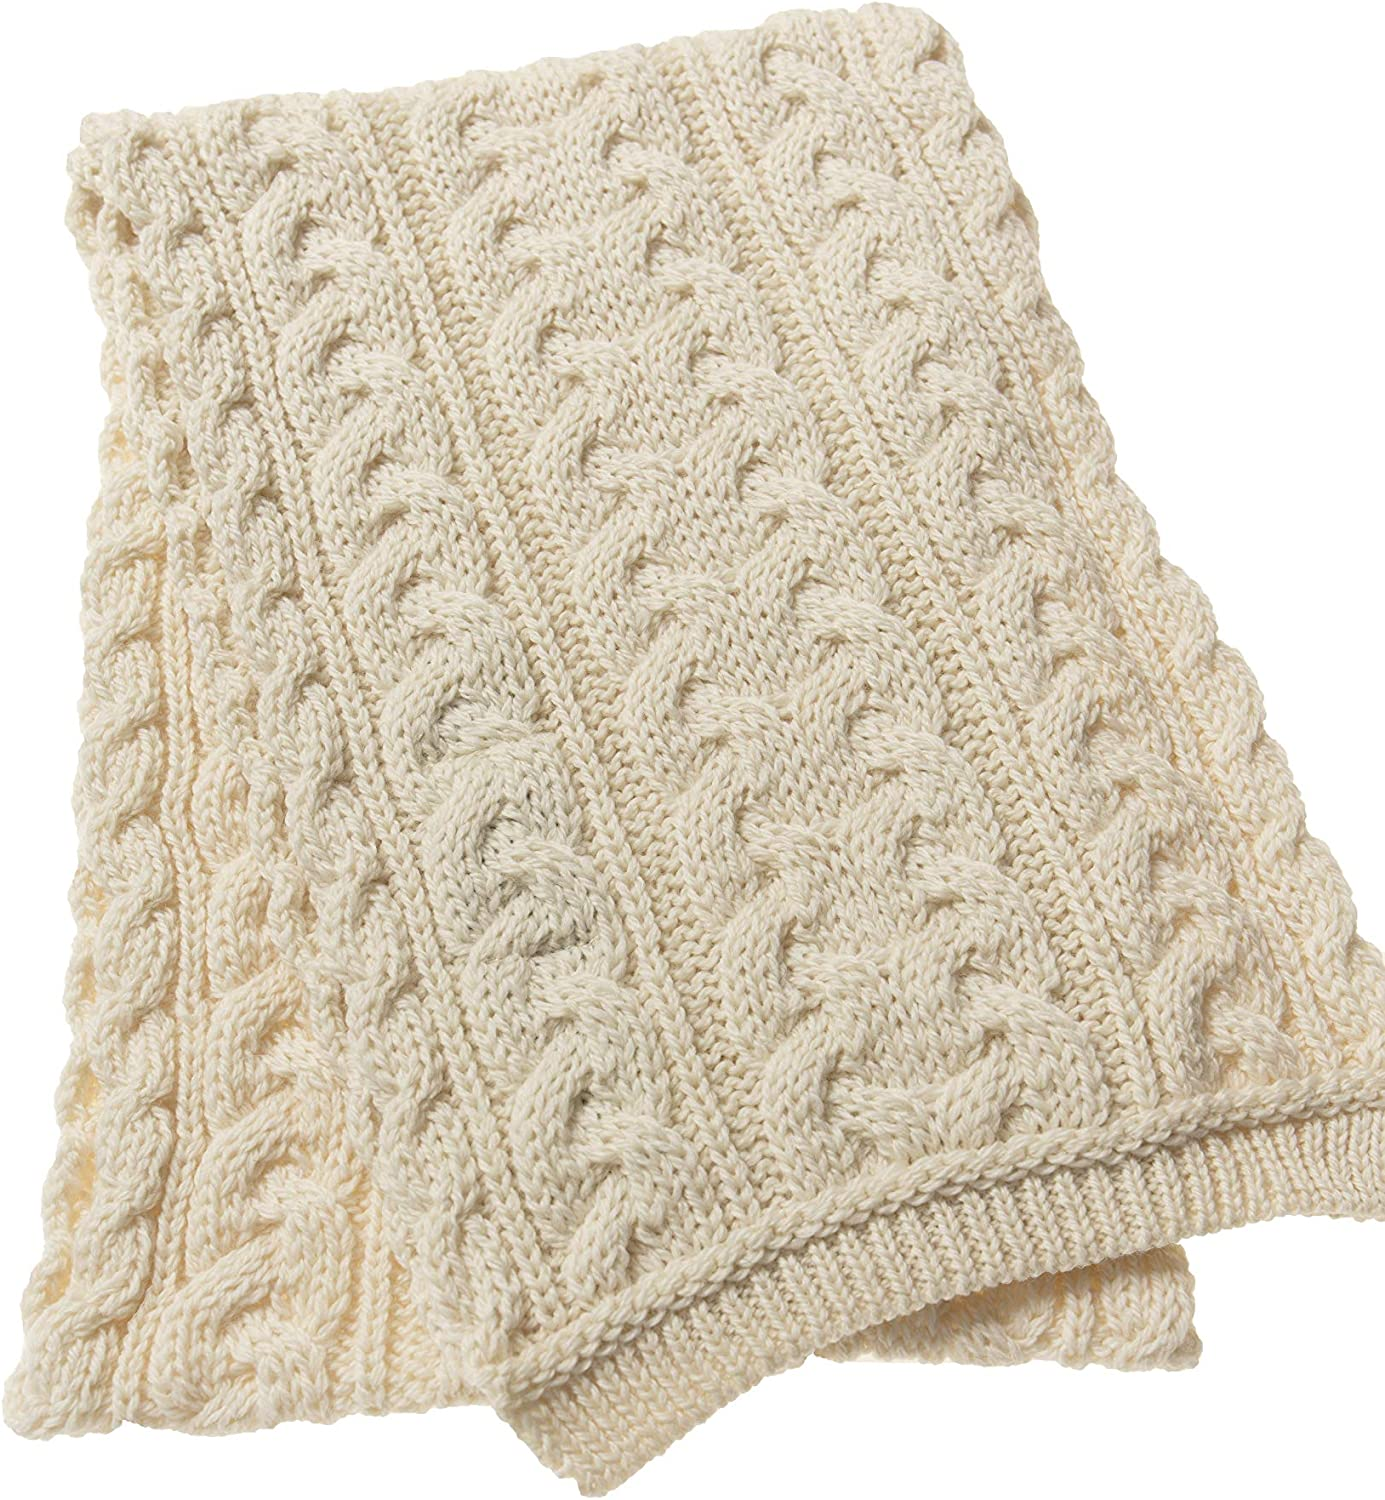 Aran Crafts Cable Knit Chunky Scarf 100/% Merino Wool